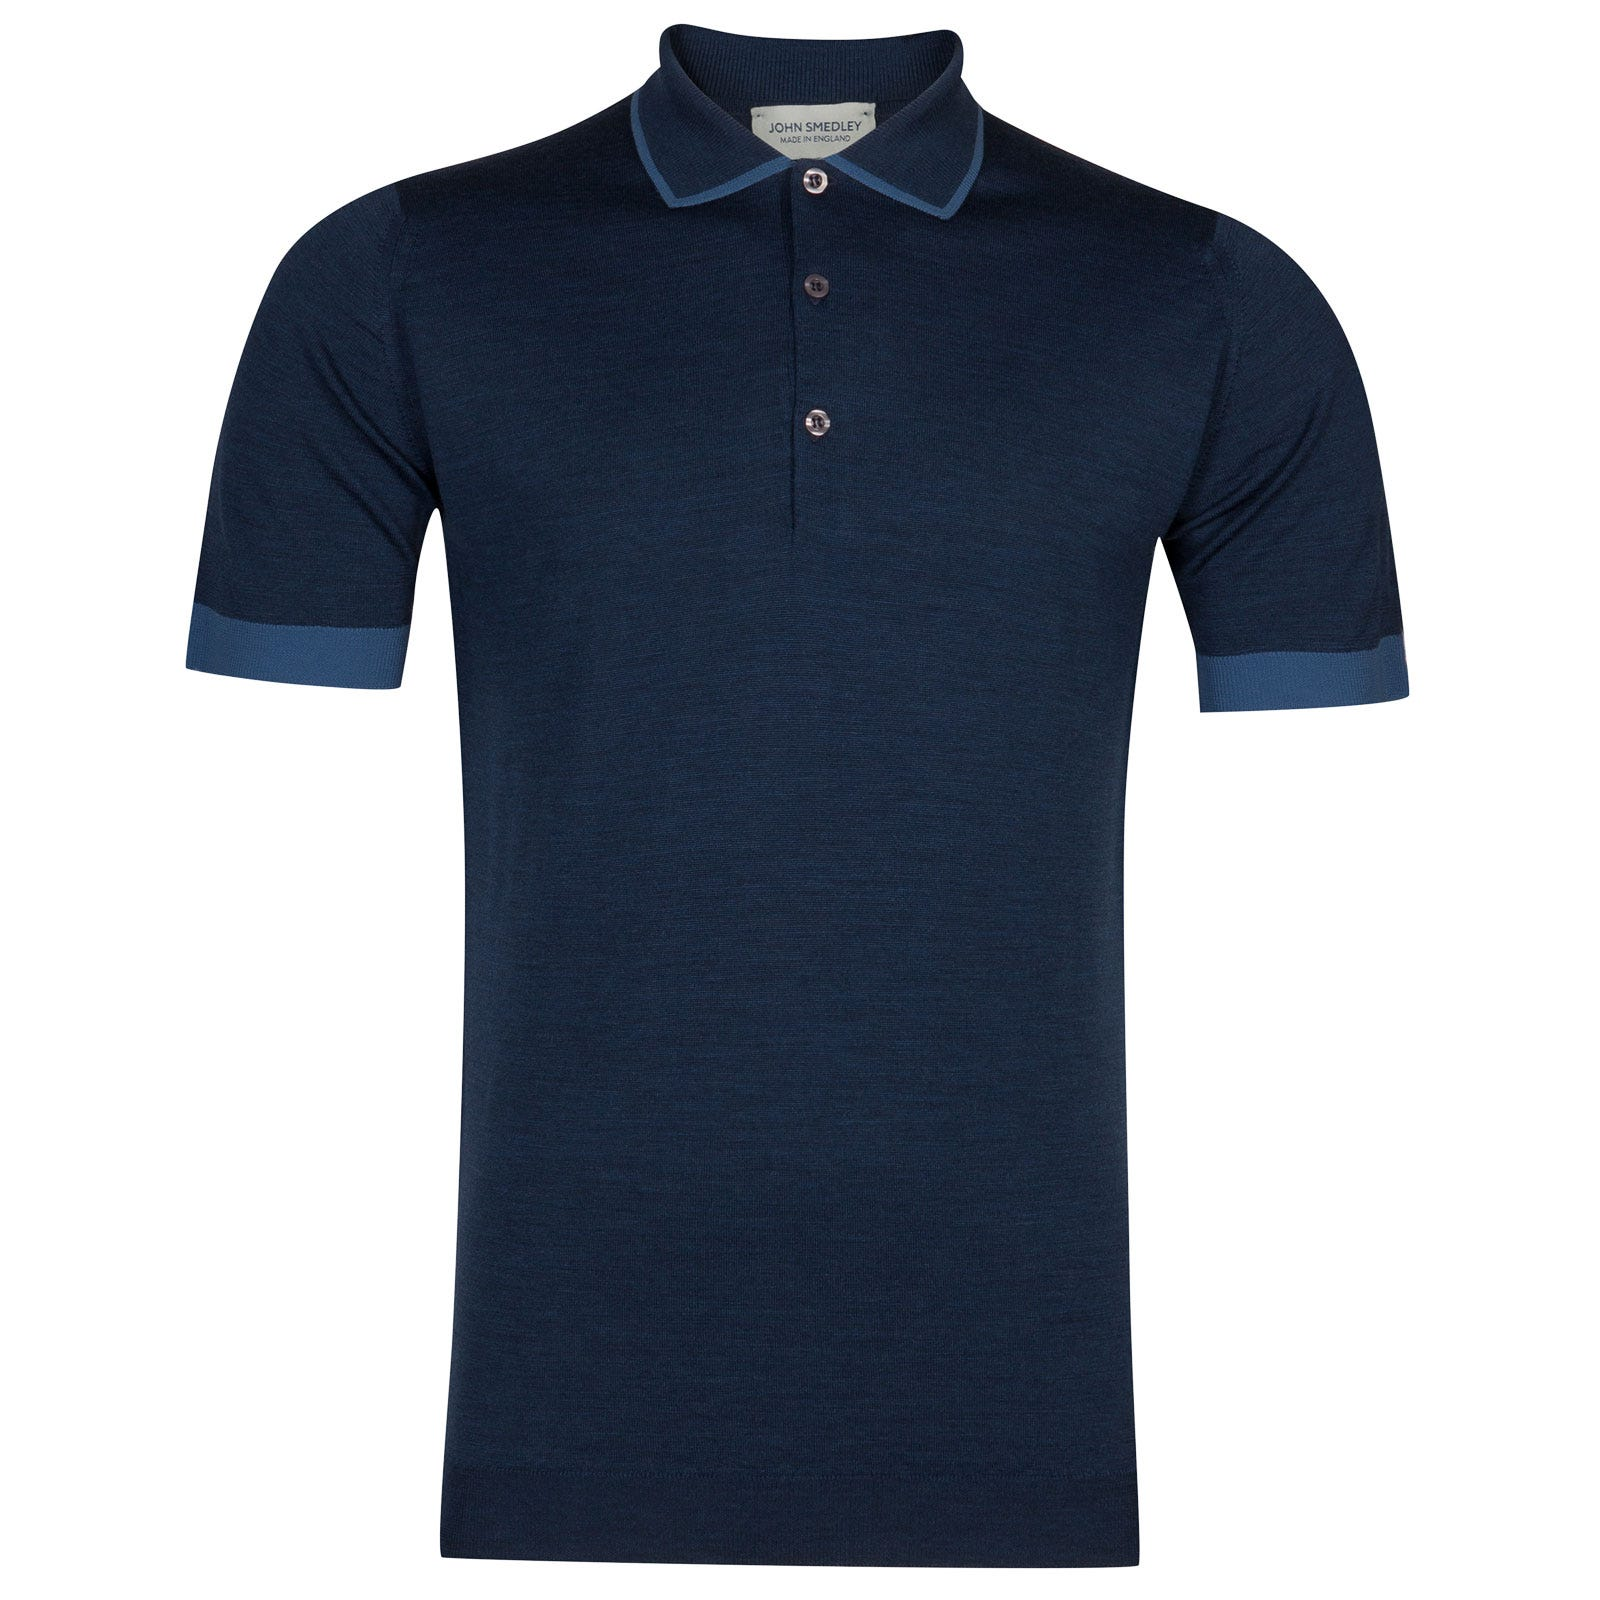 John Smedley nailsea Merino Wool Shirt in Indigo/Derwent Blue-XL